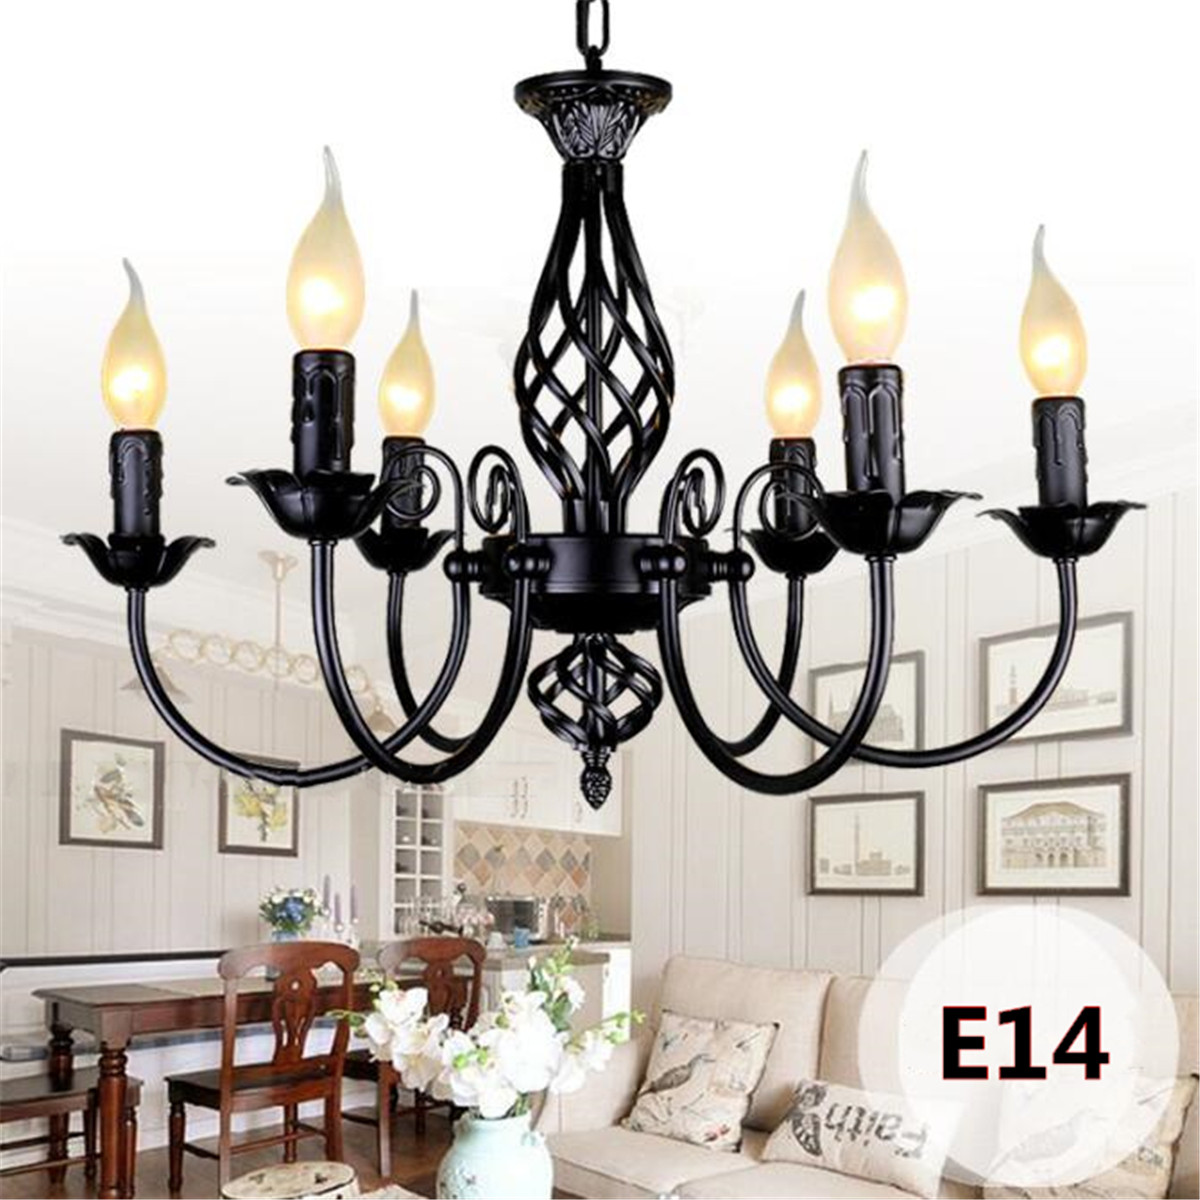 Retro Industrial Chandelier Light 3 4 5 6 heads European Wrought Iron Lamps For Living Room Bar Restaurant E14 Lustre Luminaria